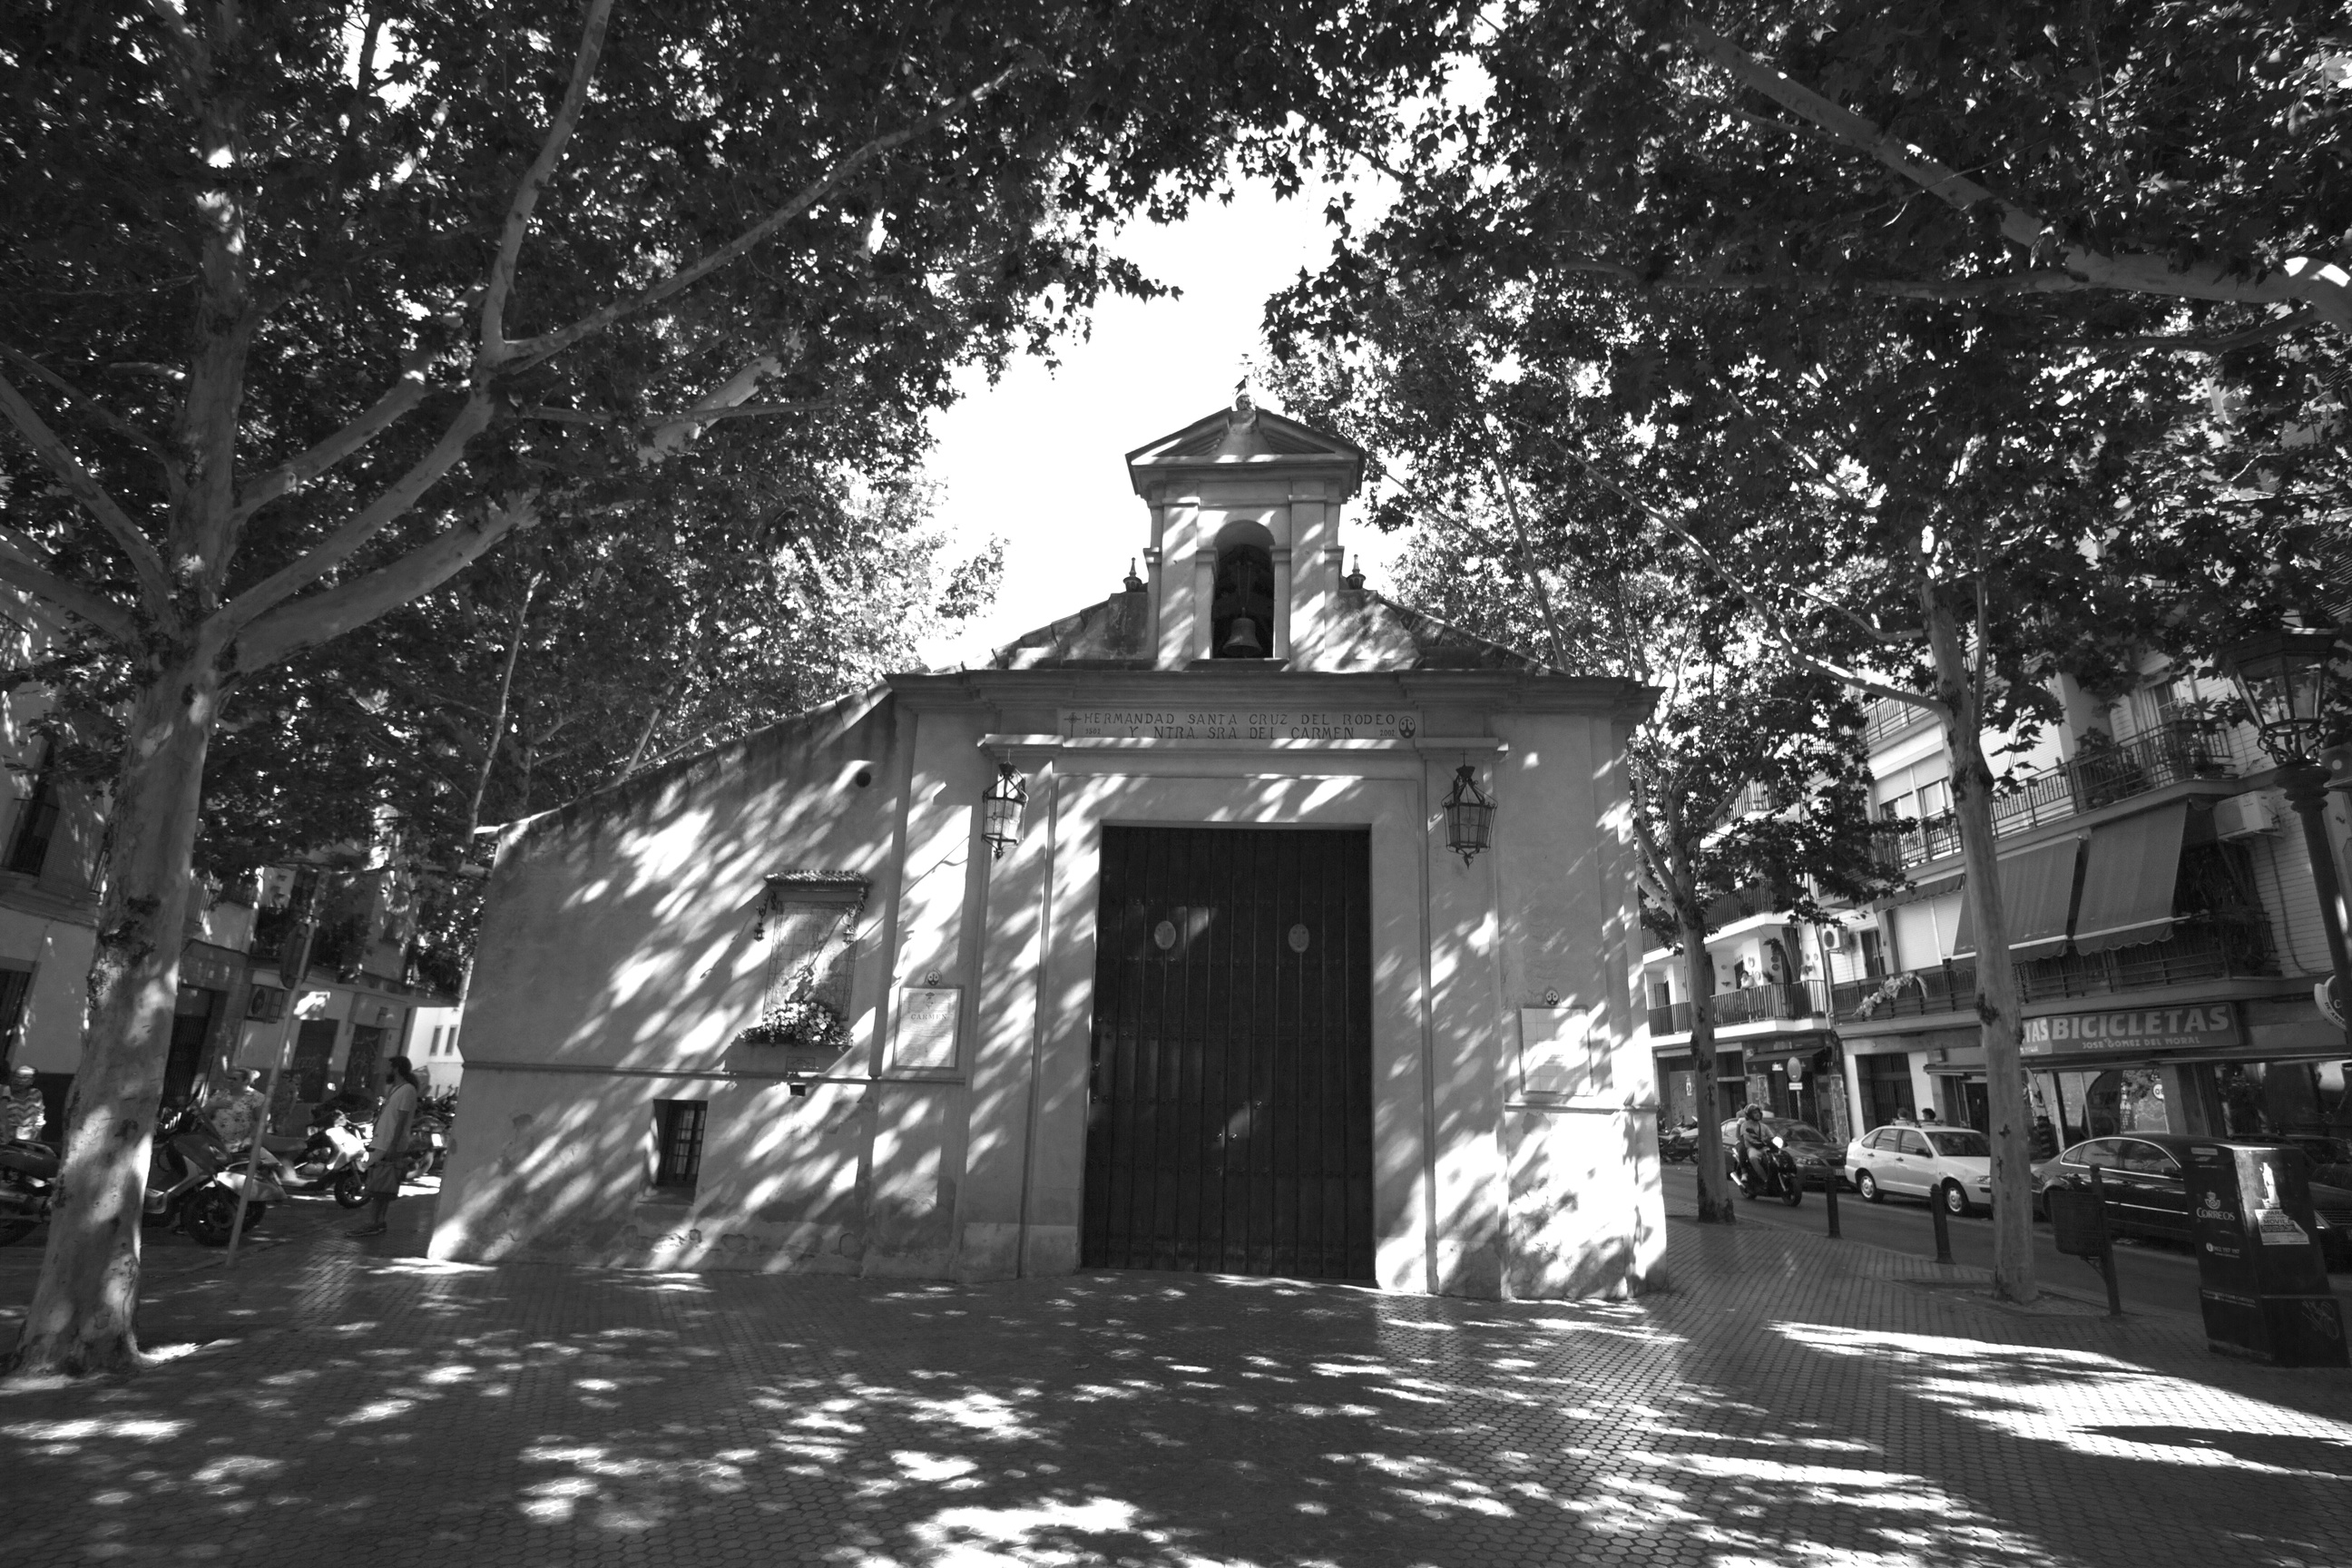 A black and white chuch